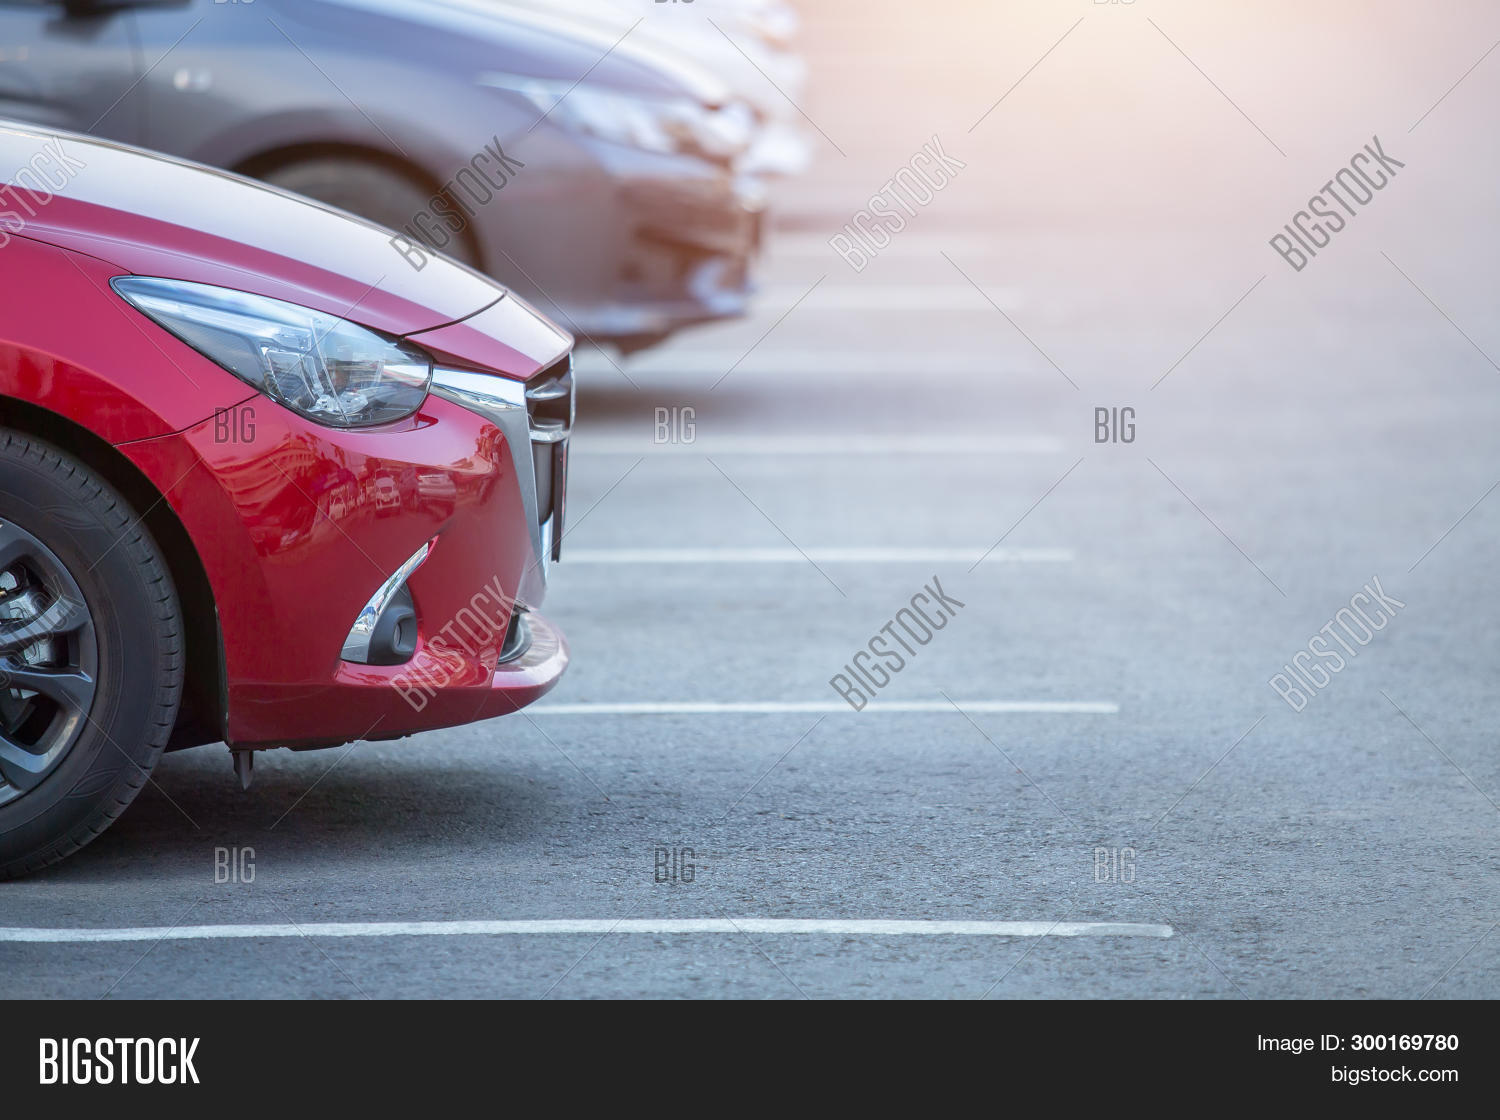 Cars Parked Parking , Image & Photo (Free Trial) | Bigstock